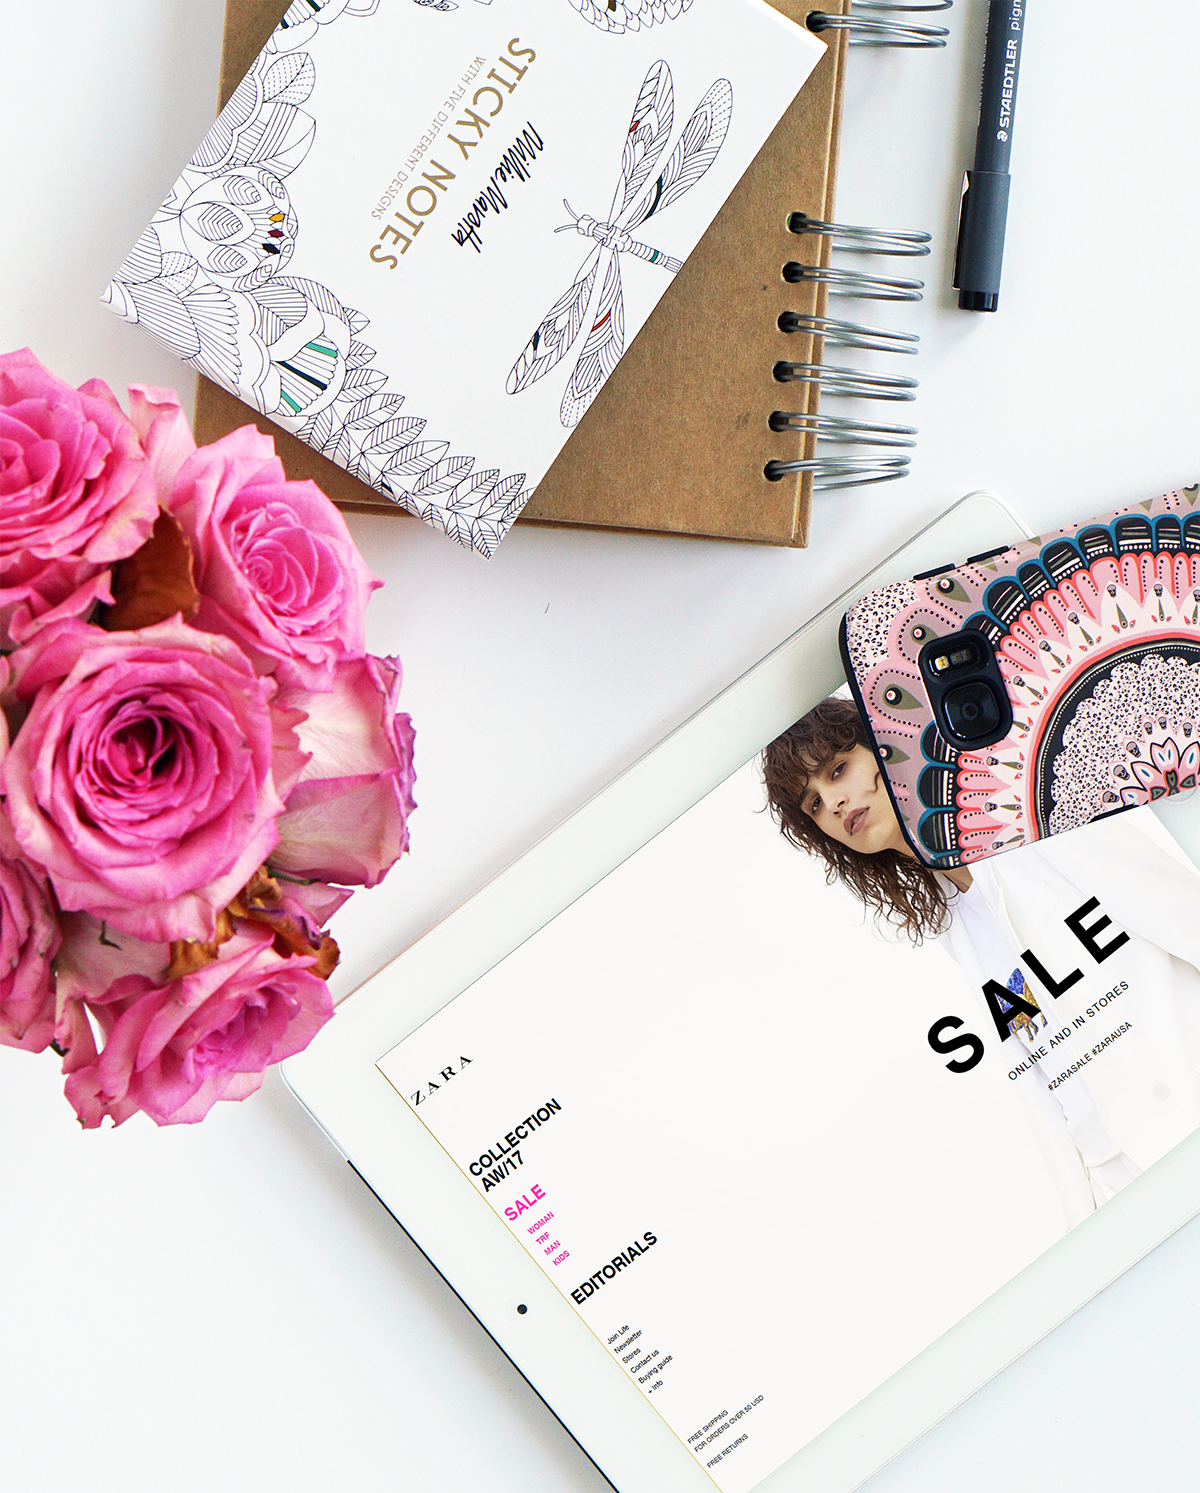 HOW TO SHOP THE SALES LIKE A PRO